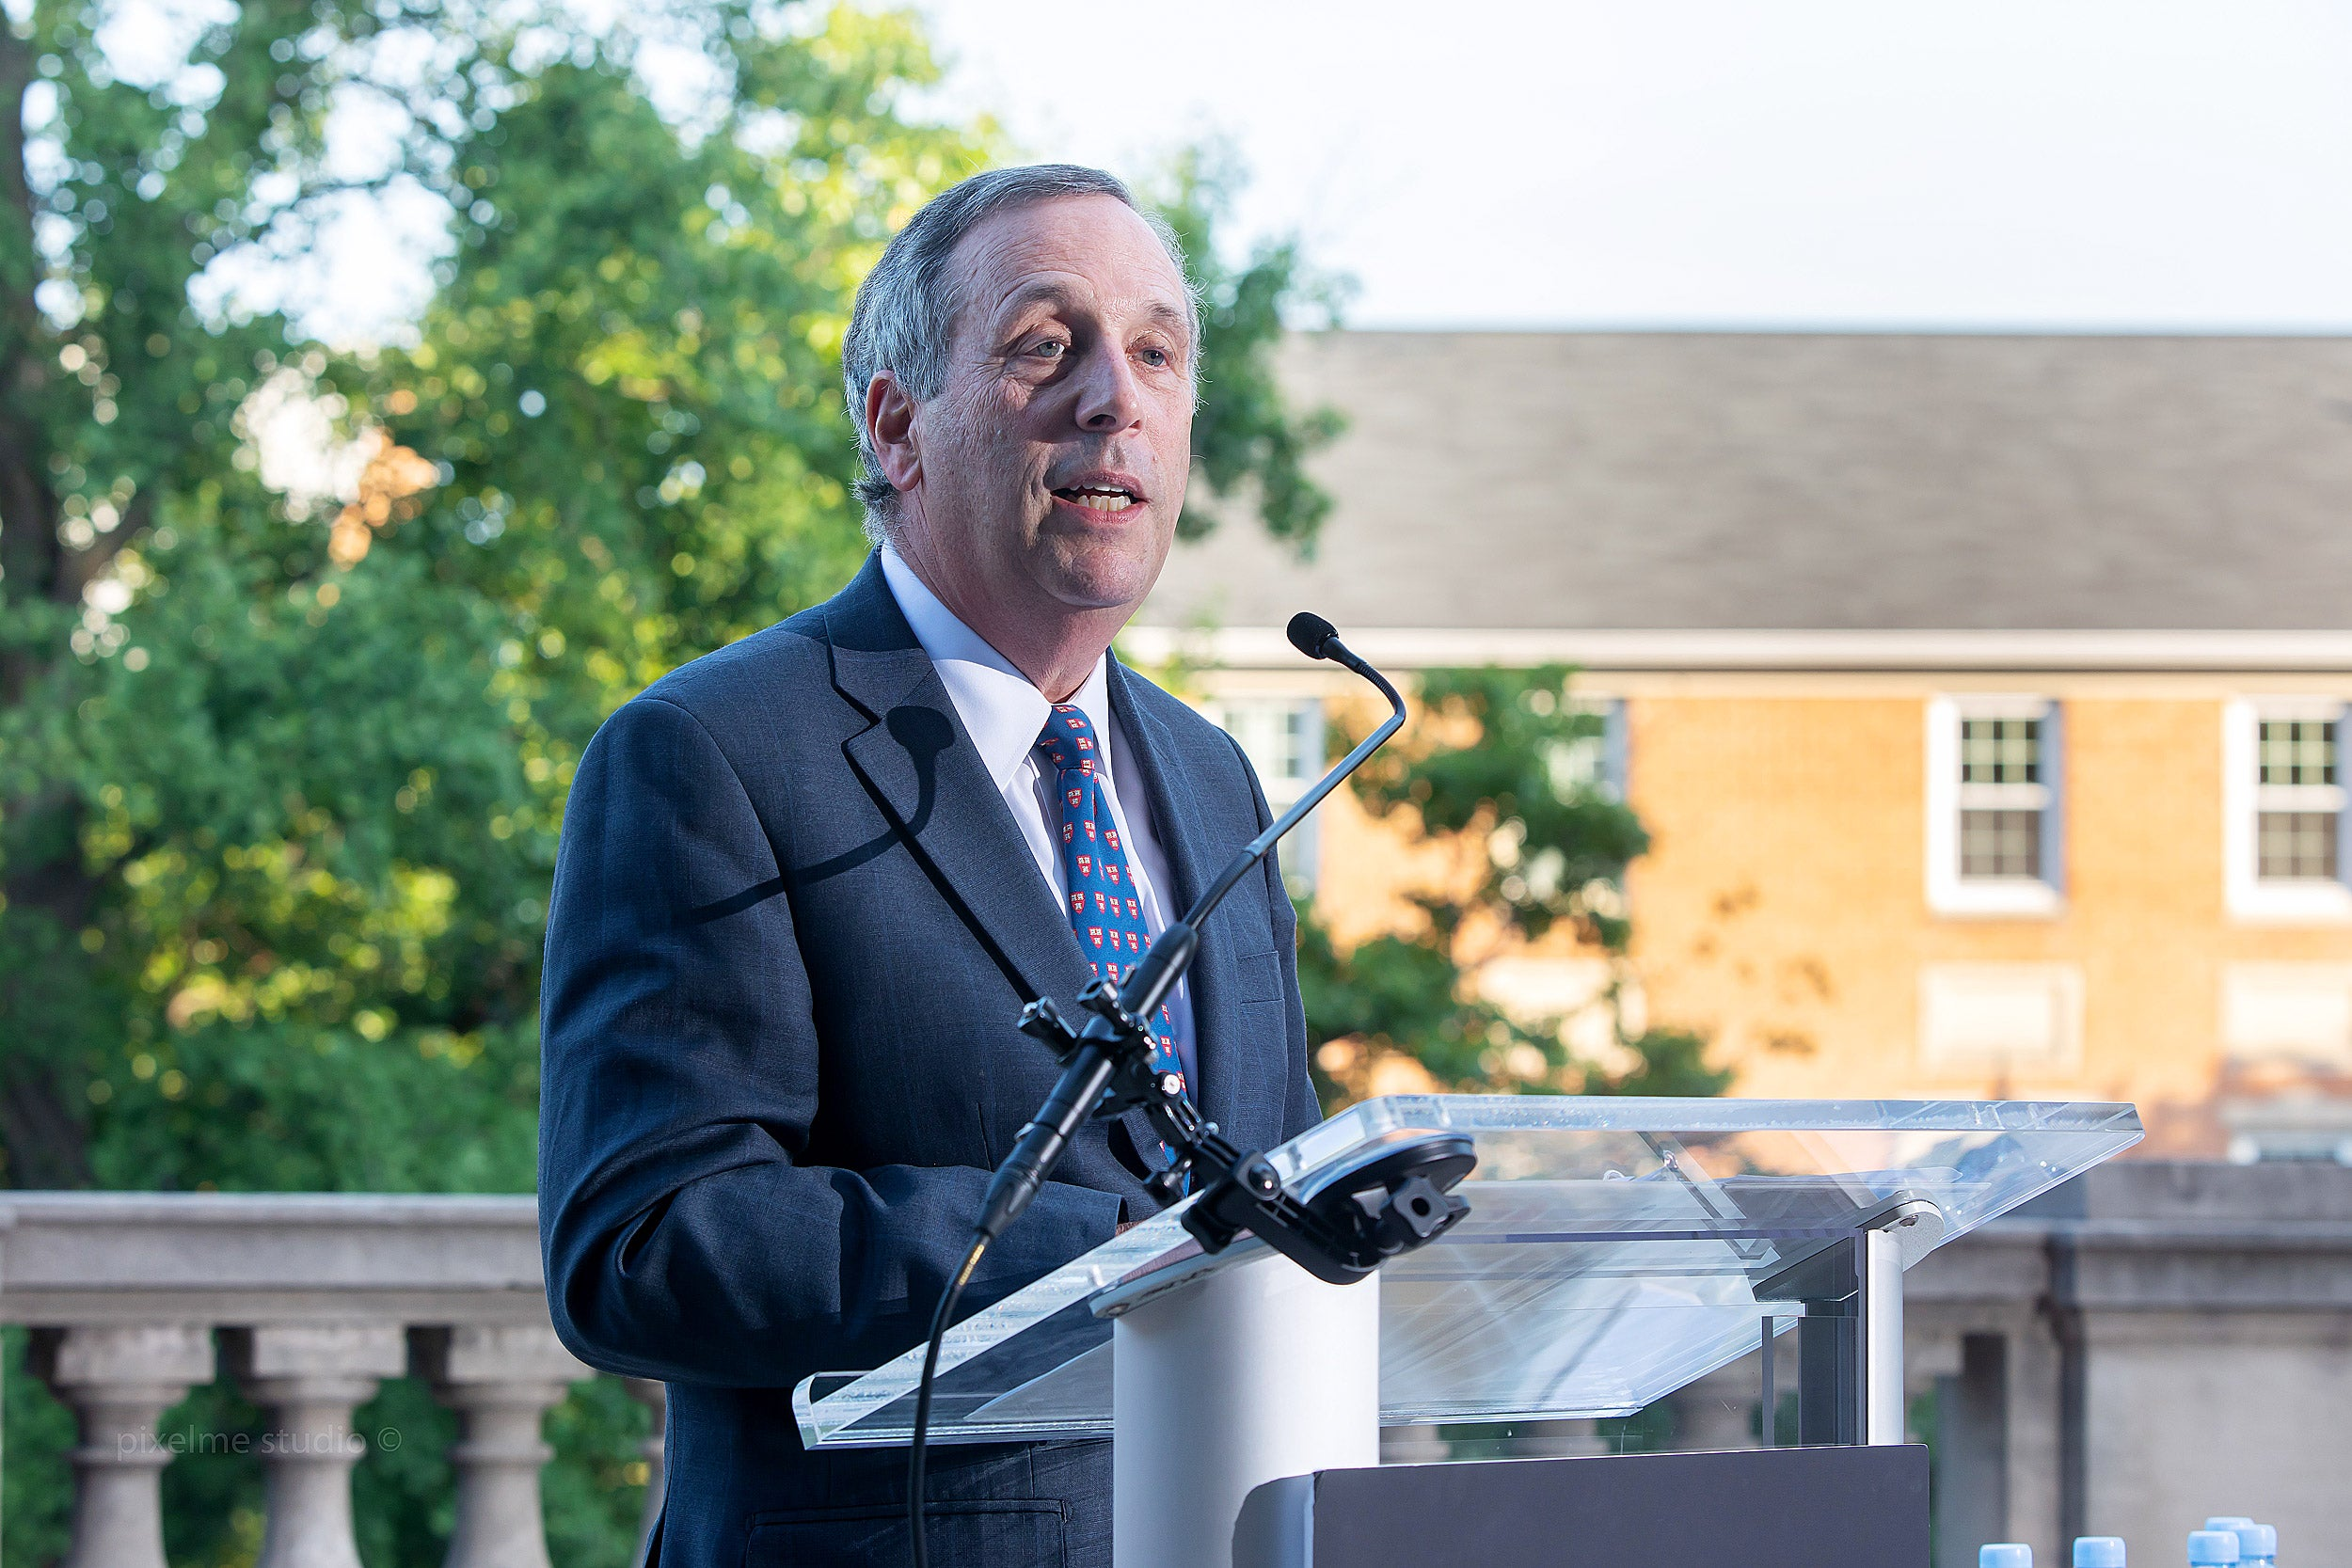 Harvard President Larry Bacow speaking in Washington, D.C.